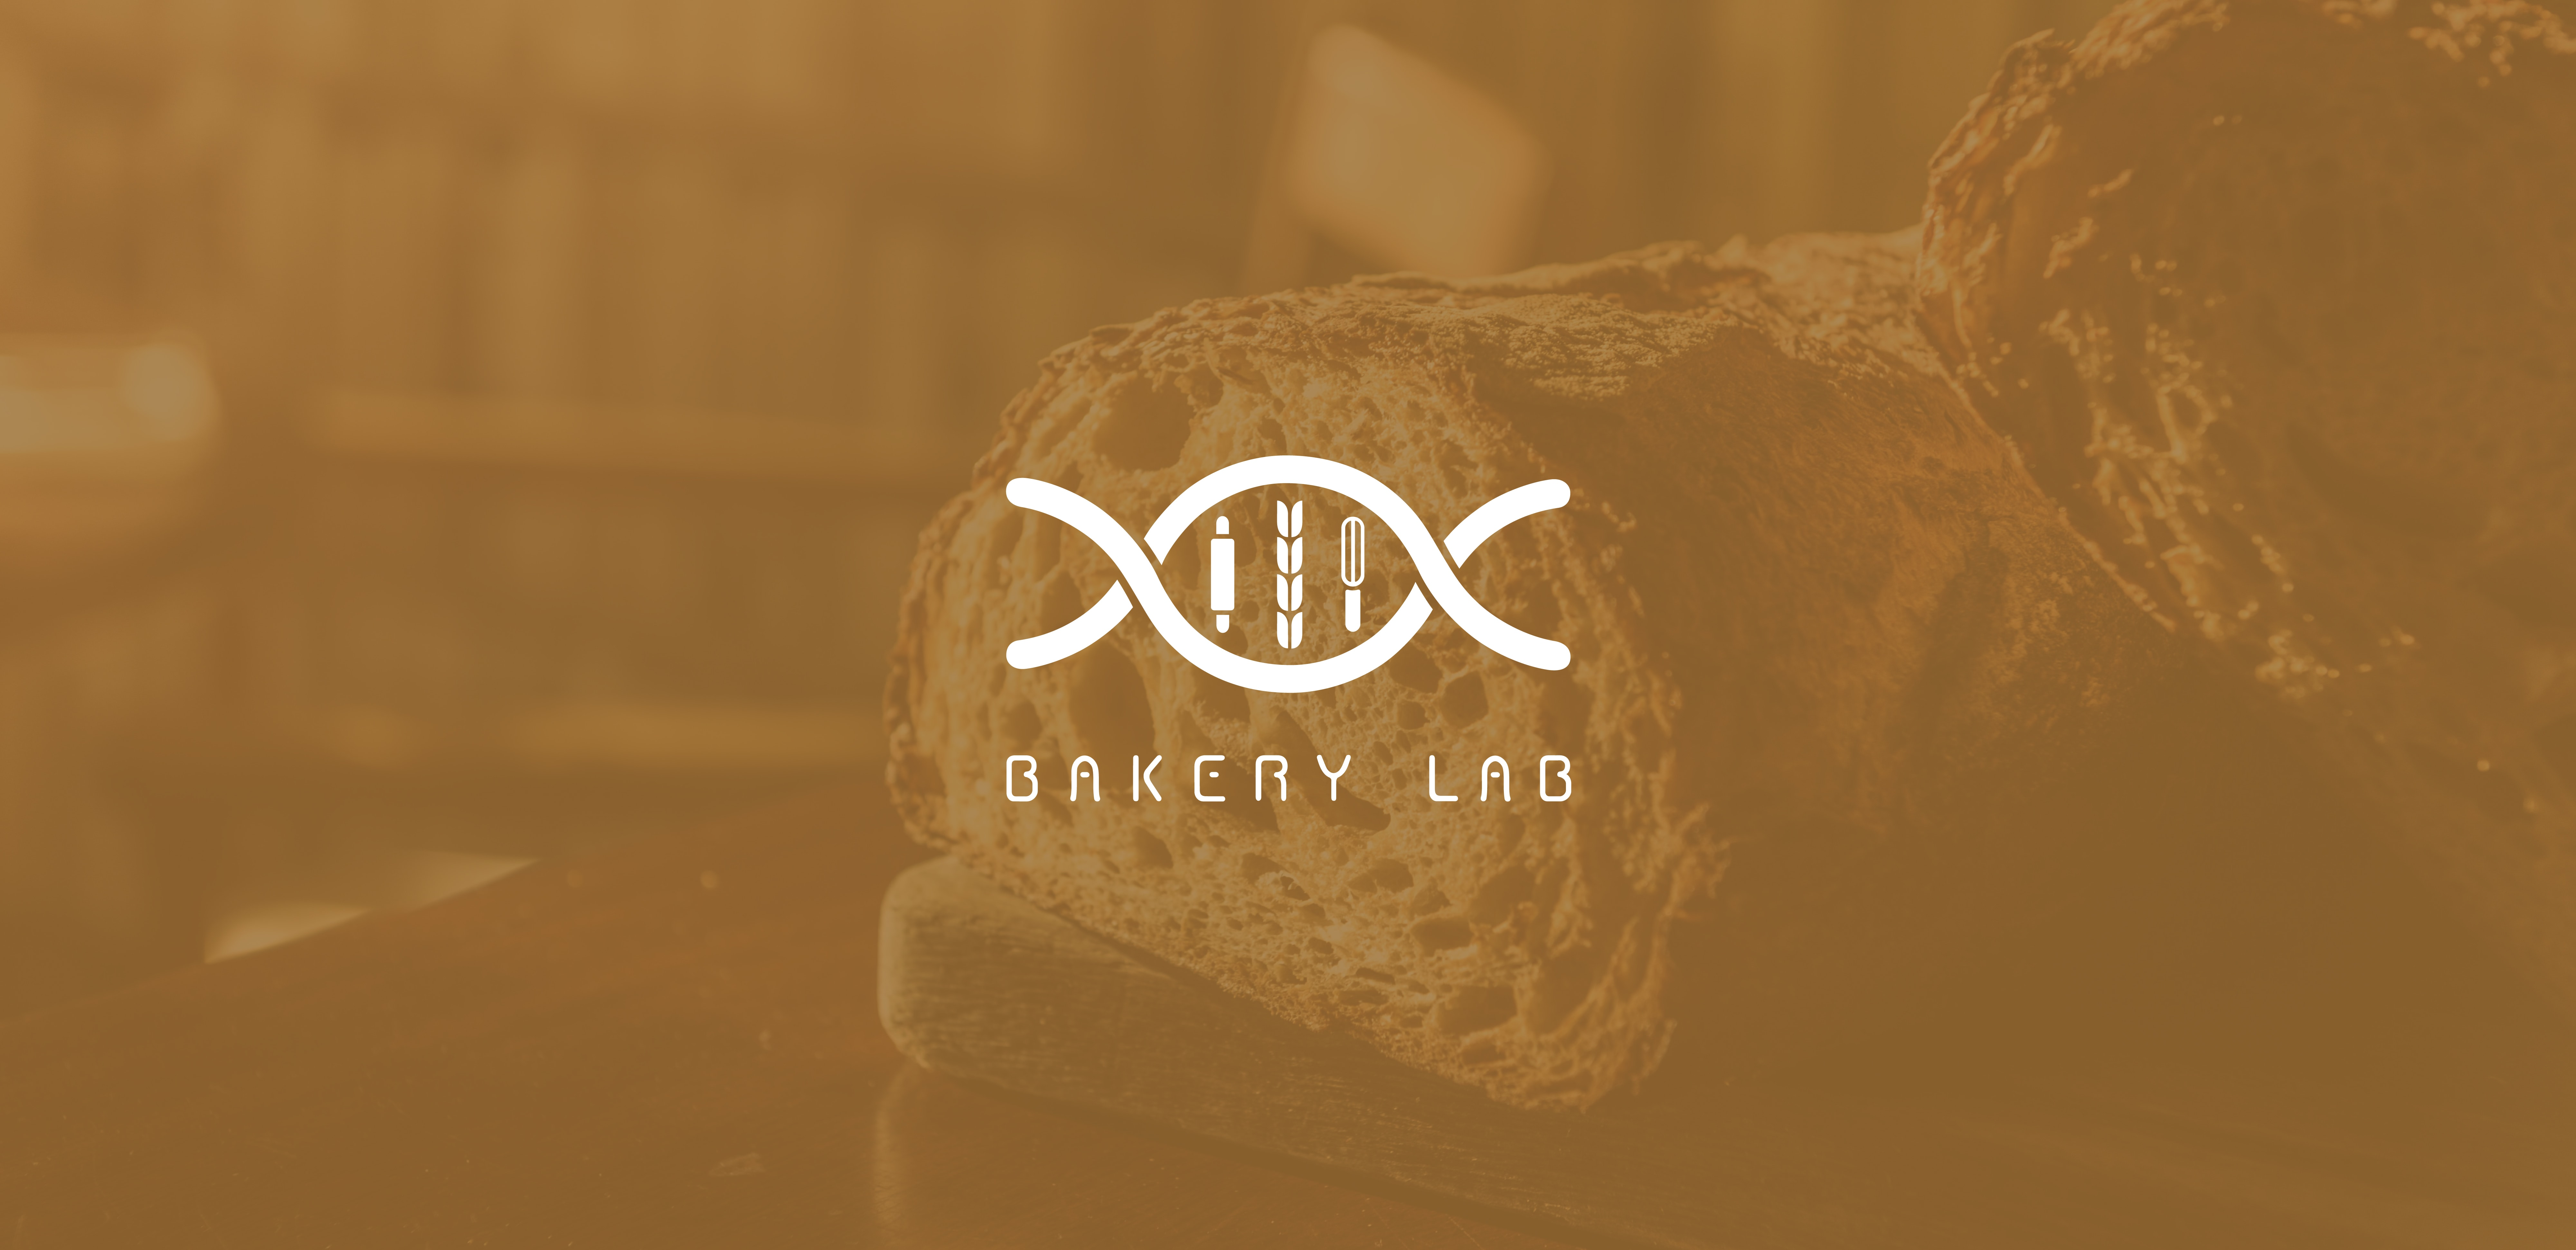 bakery lab logo设计